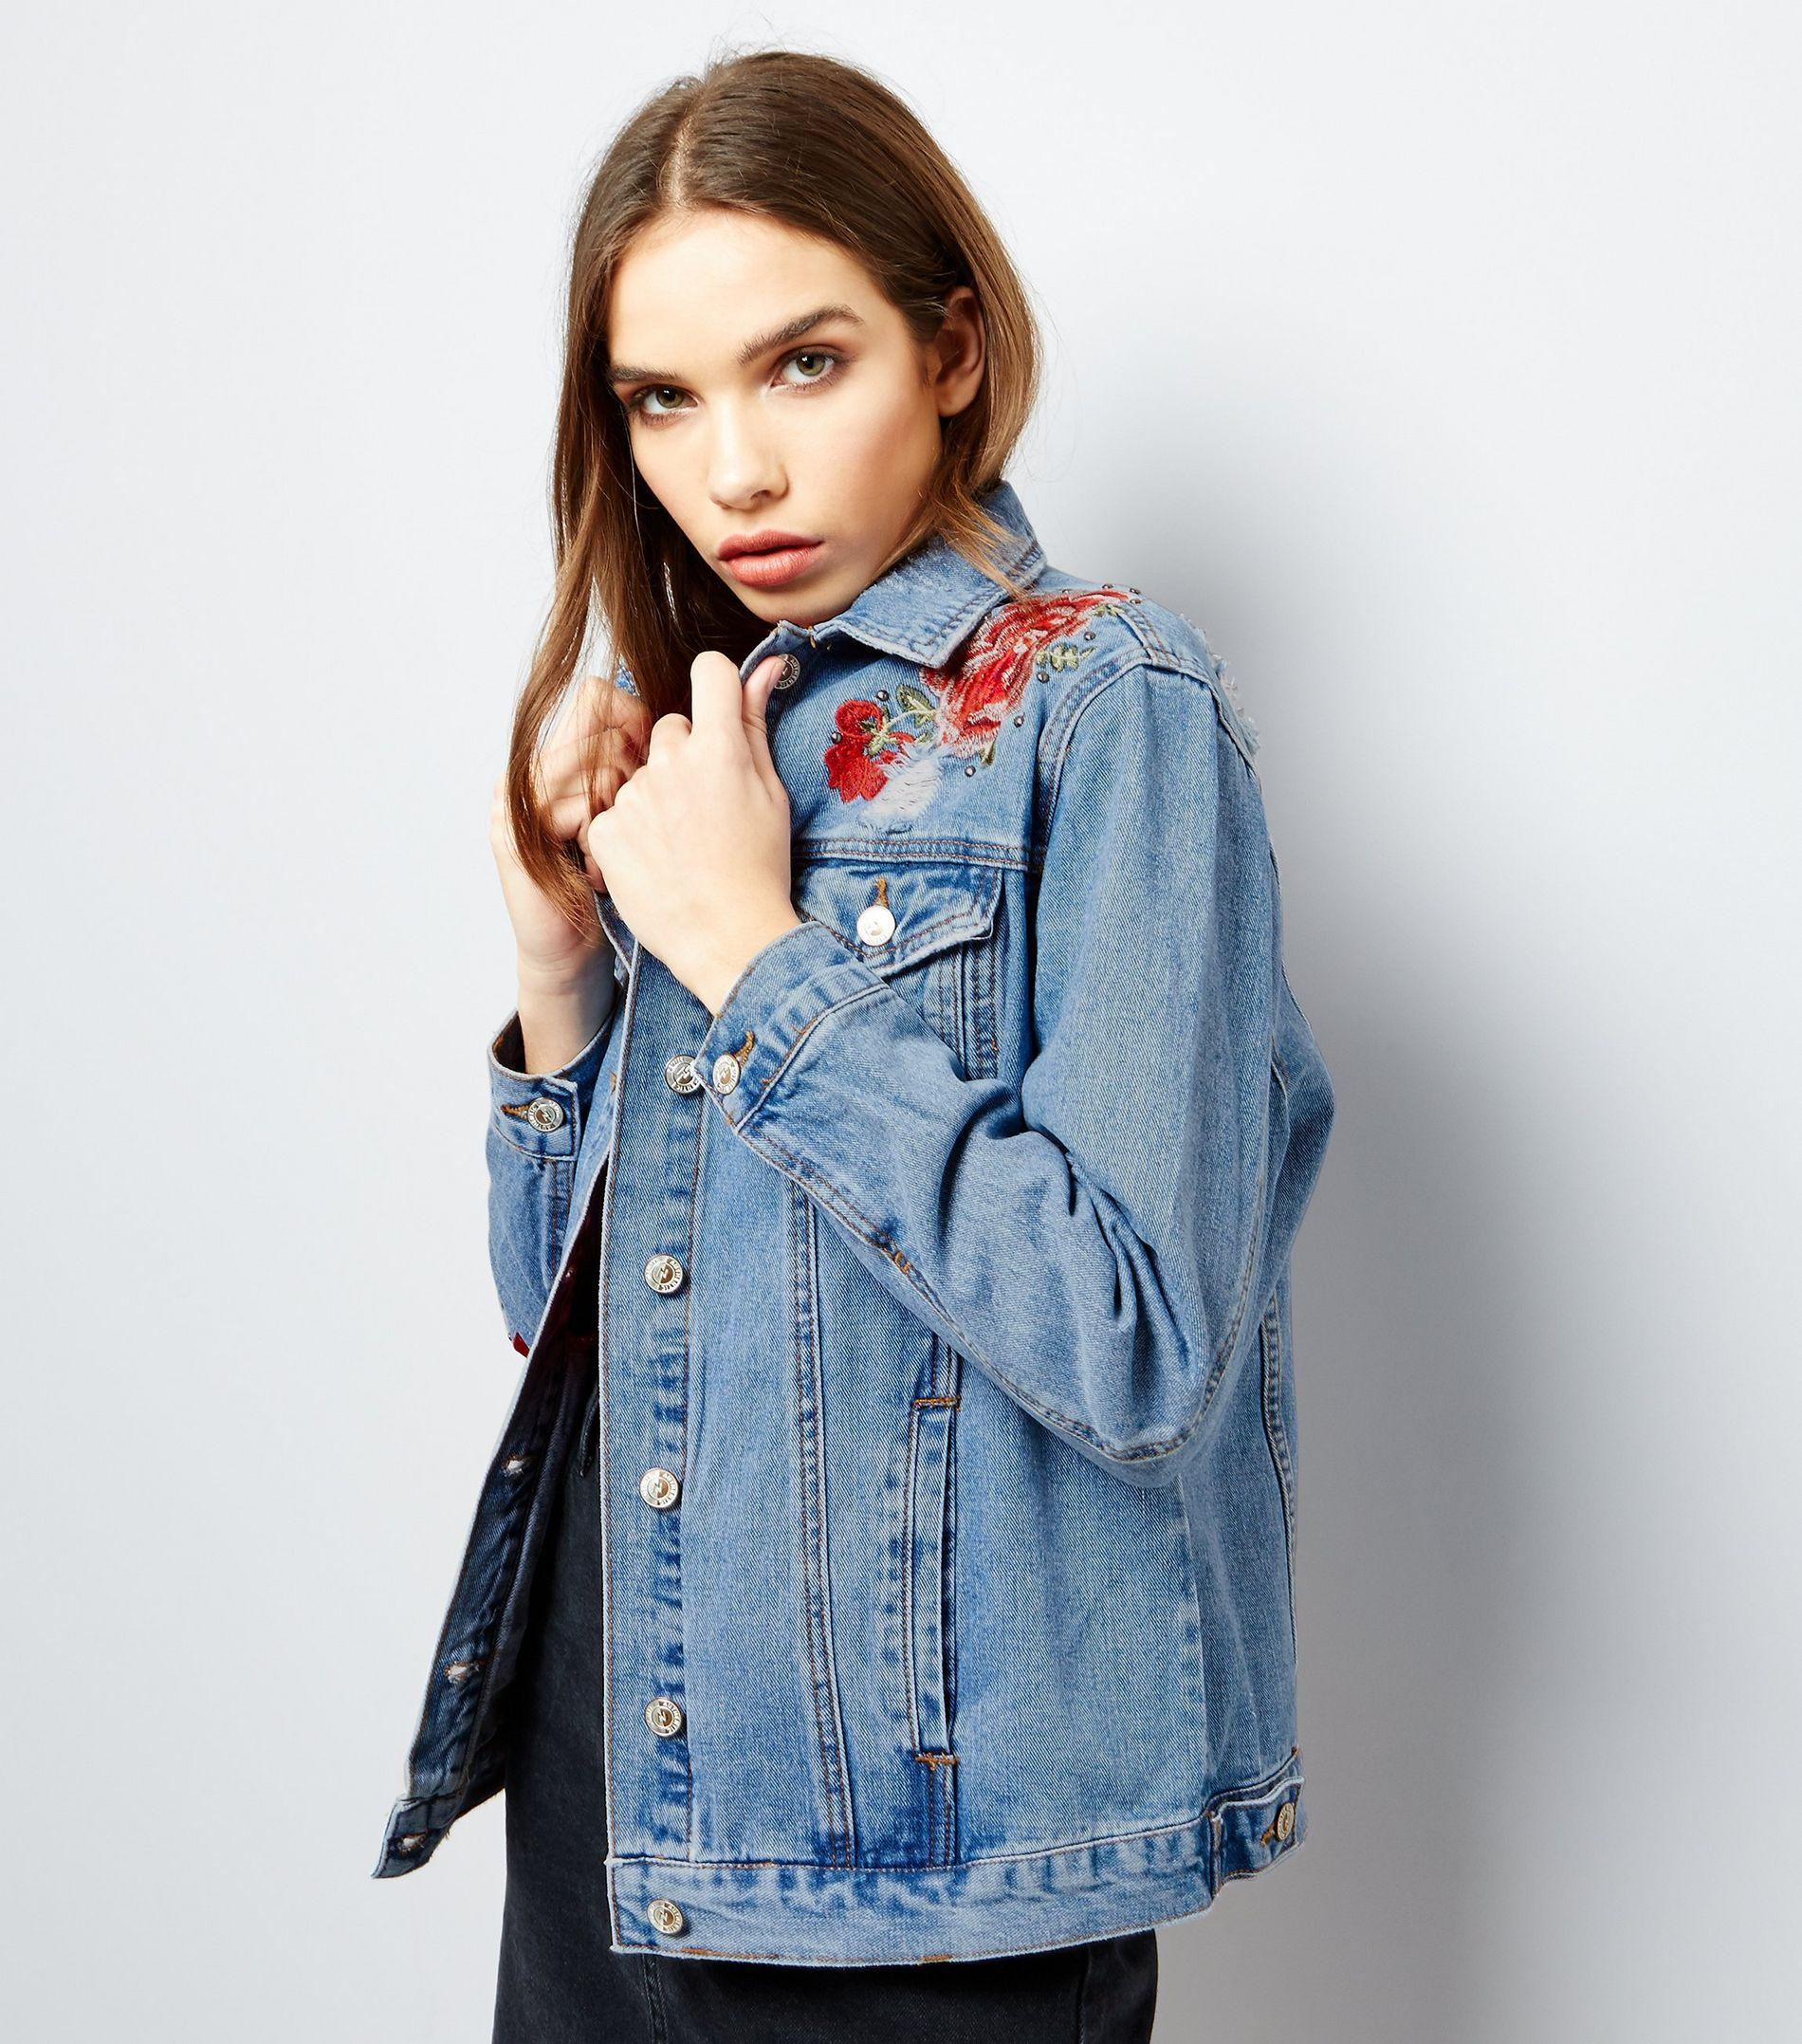 Lyst new look blue floral embroidered denim jacket in